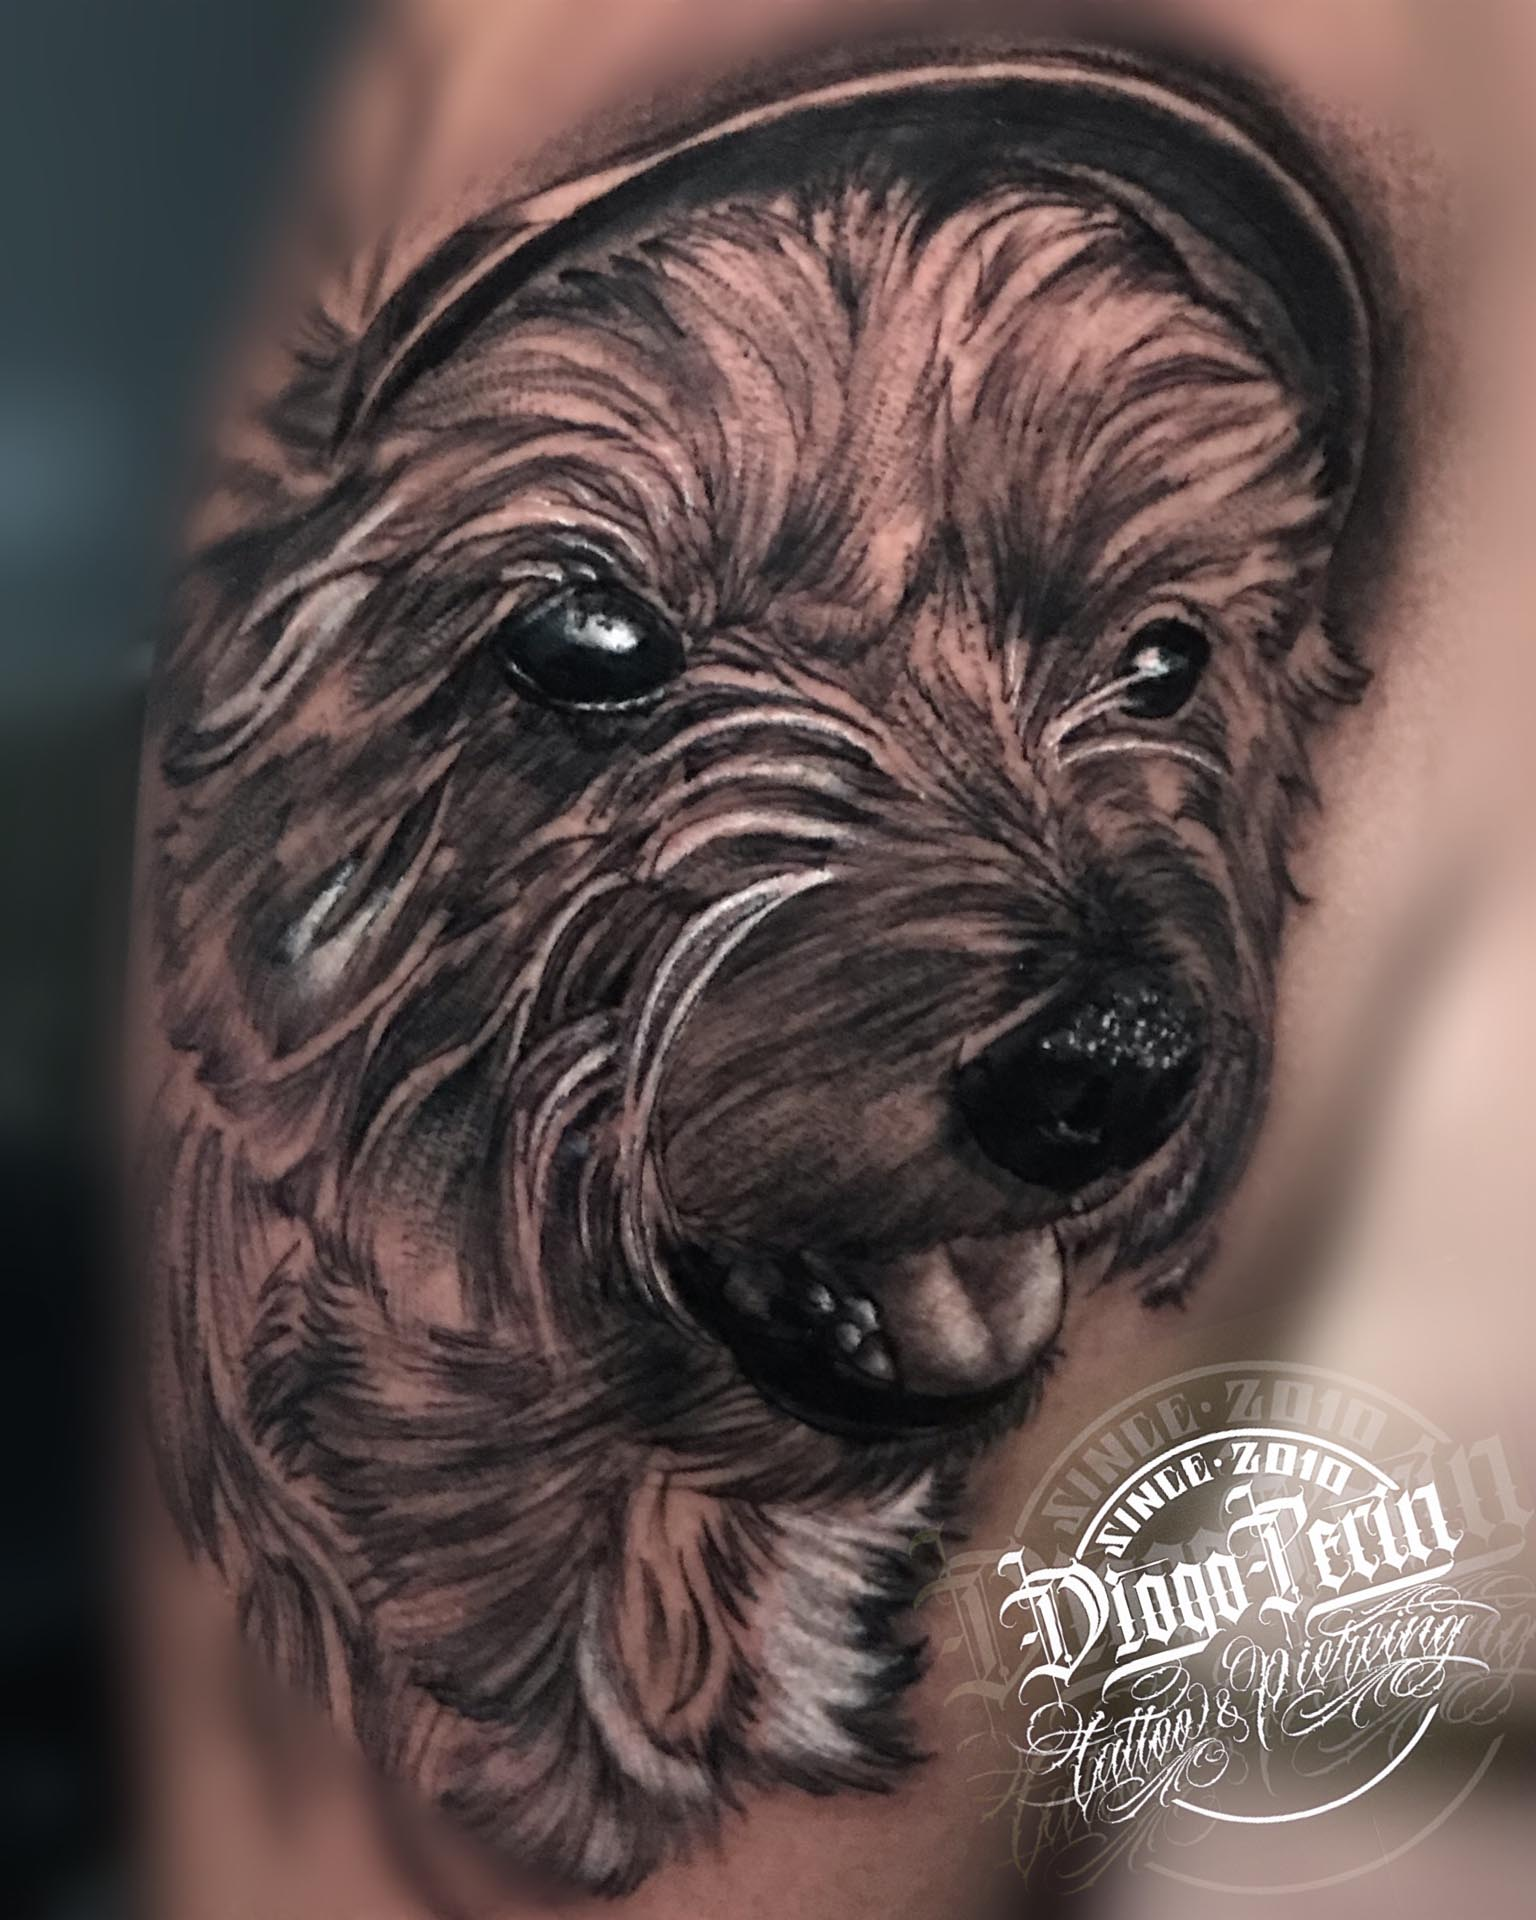 yorkshire, tattoo, realistic, realismo, perro, dog, portrait, alicante, santa pola, tattoo, tatuajes, tattoos